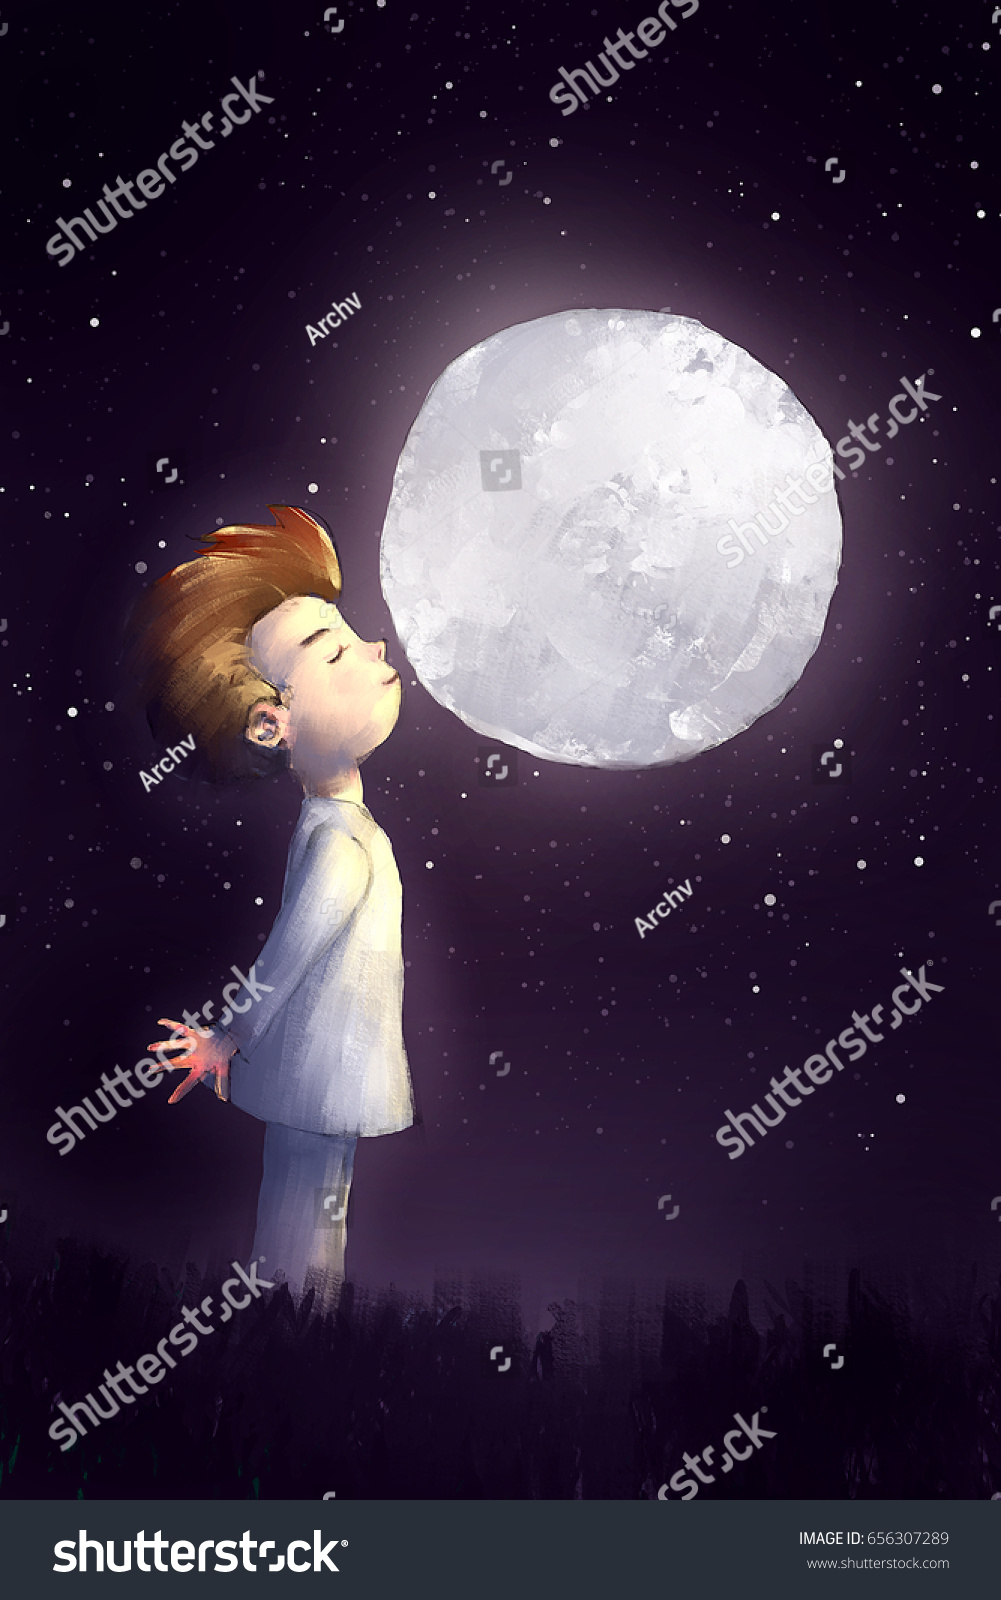 Digital painting of alone boy kissing the full moon story telling illustration